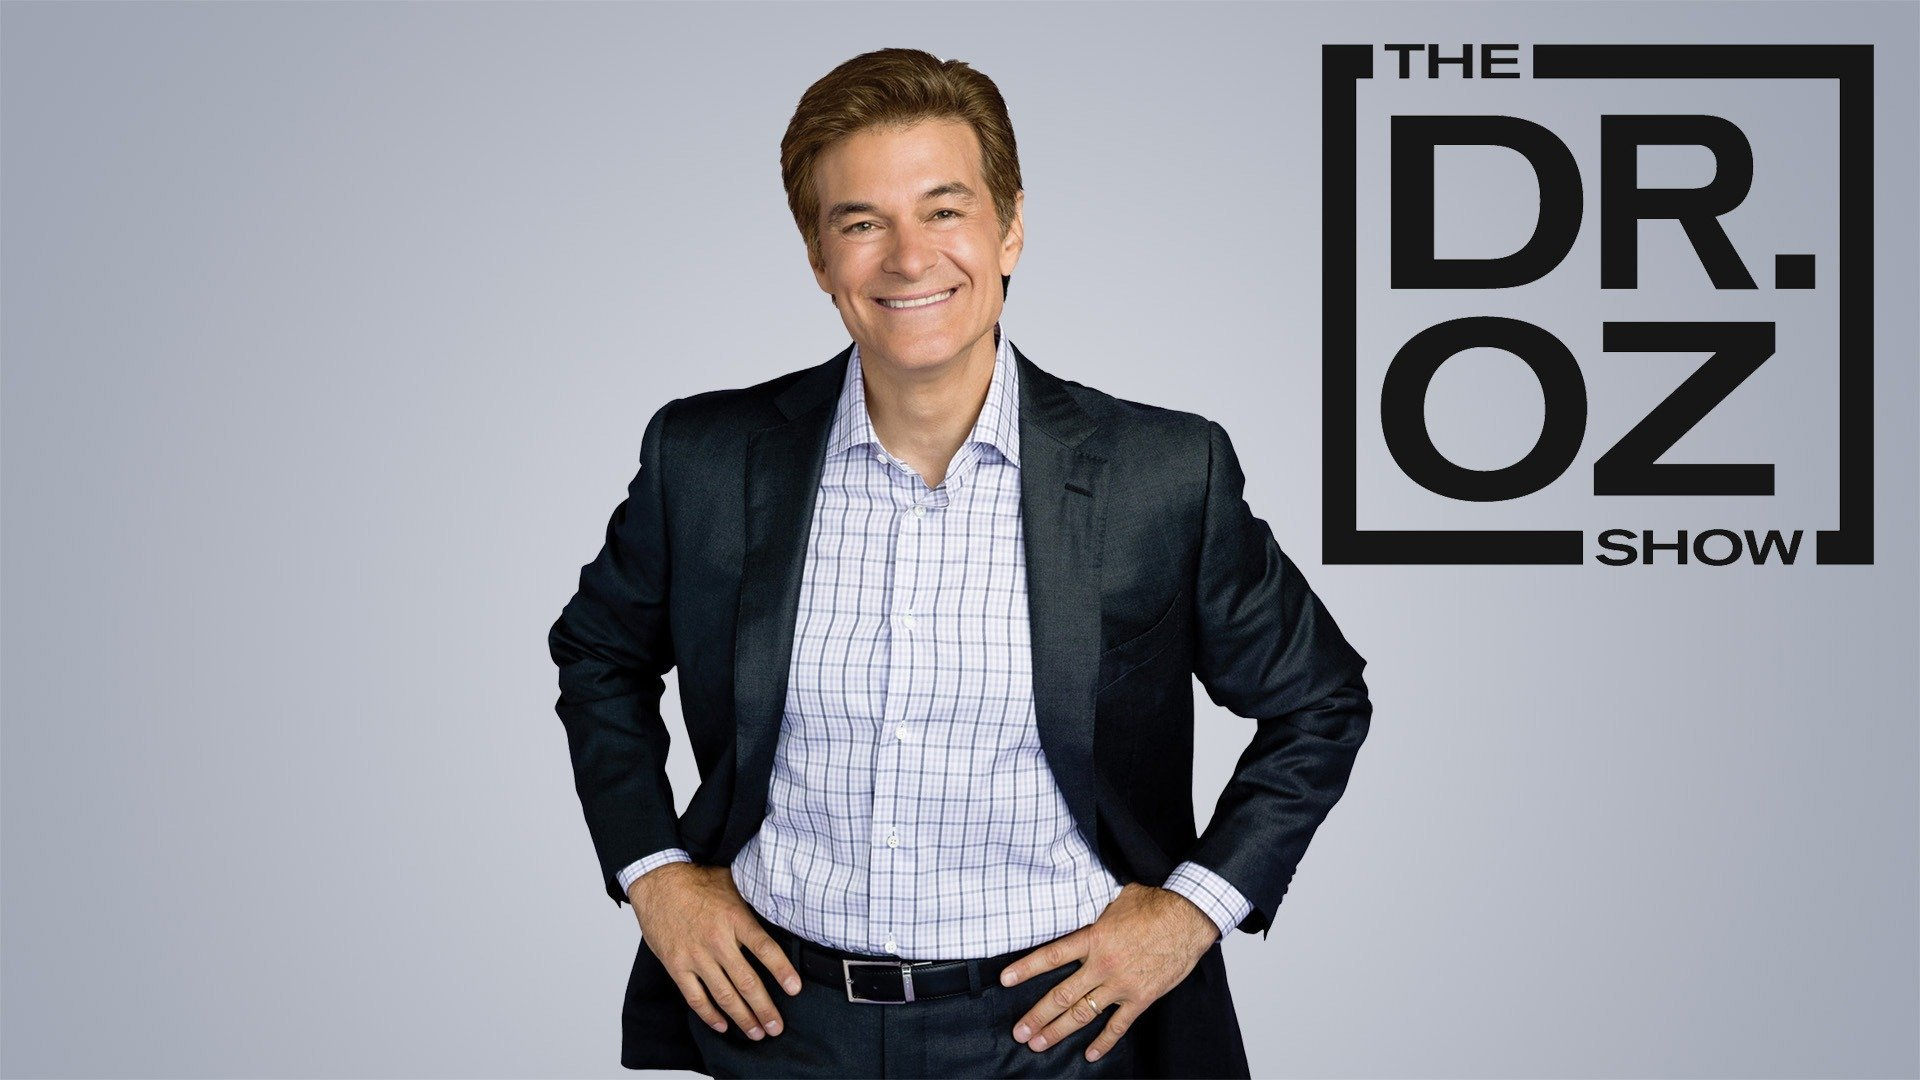 The Dr. Oz Show (Syndicated)